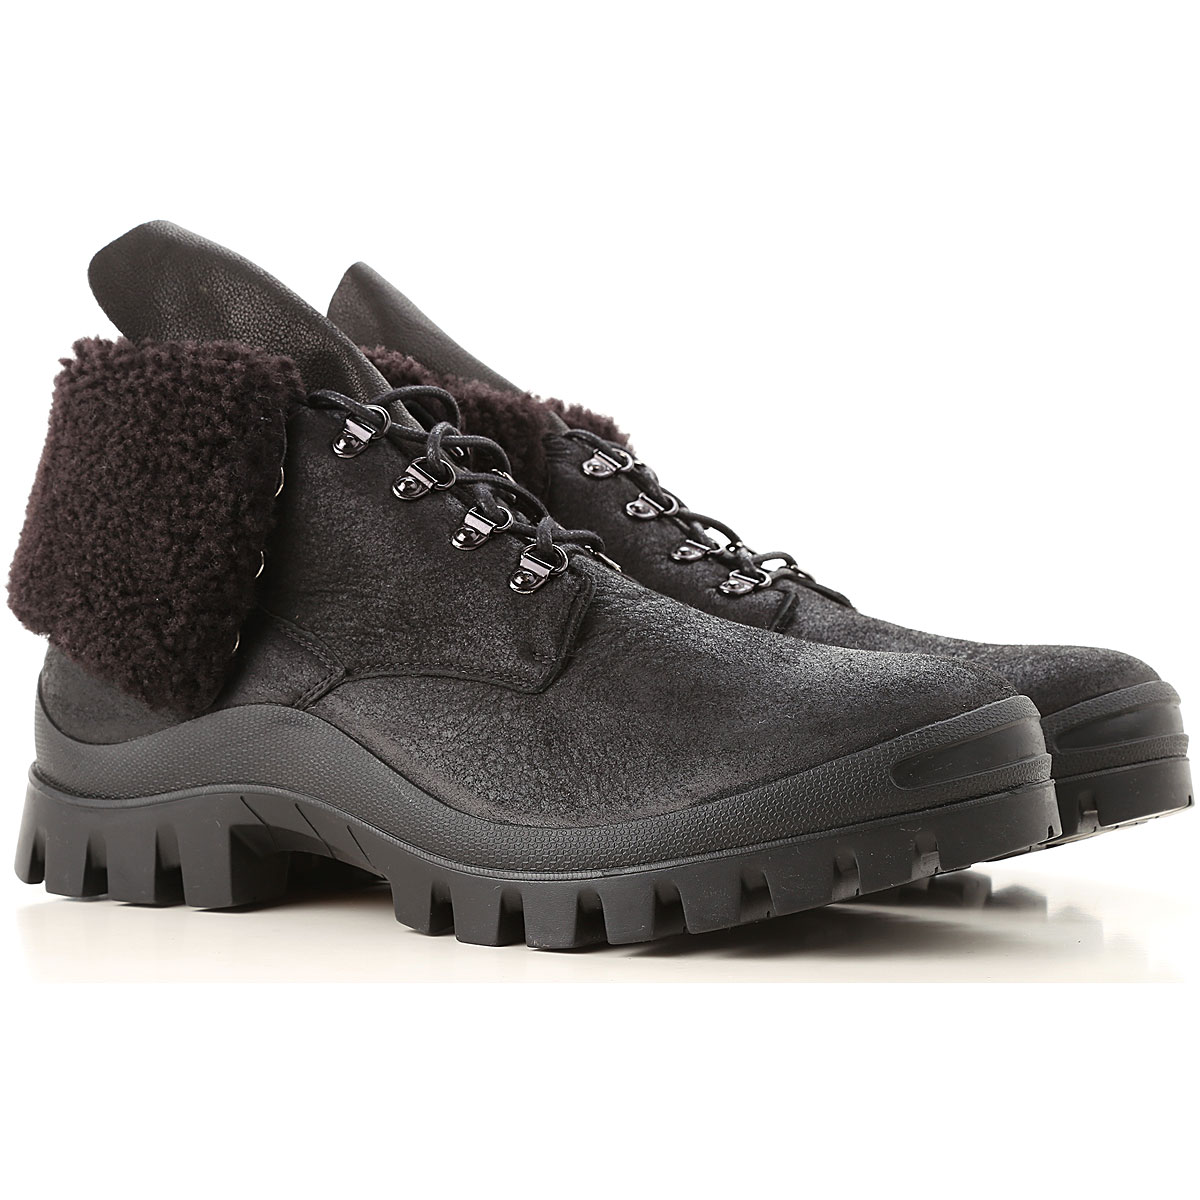 Henderson Boots for Men Booties On Sale SE - GOOFASH